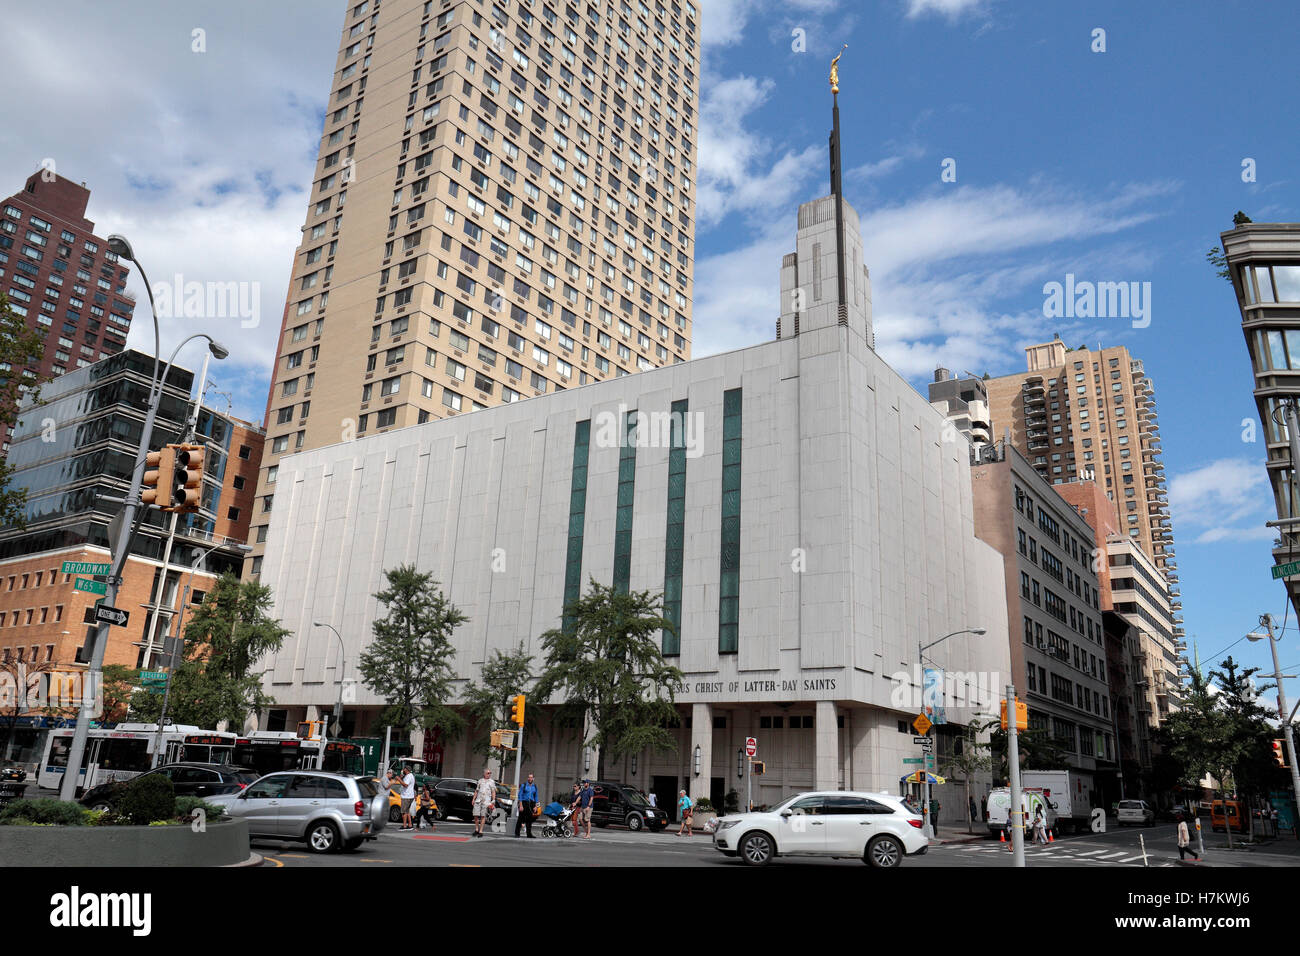 The Manhattan Lds Temple Of The Church Of Jesus Christ Of Latter Day